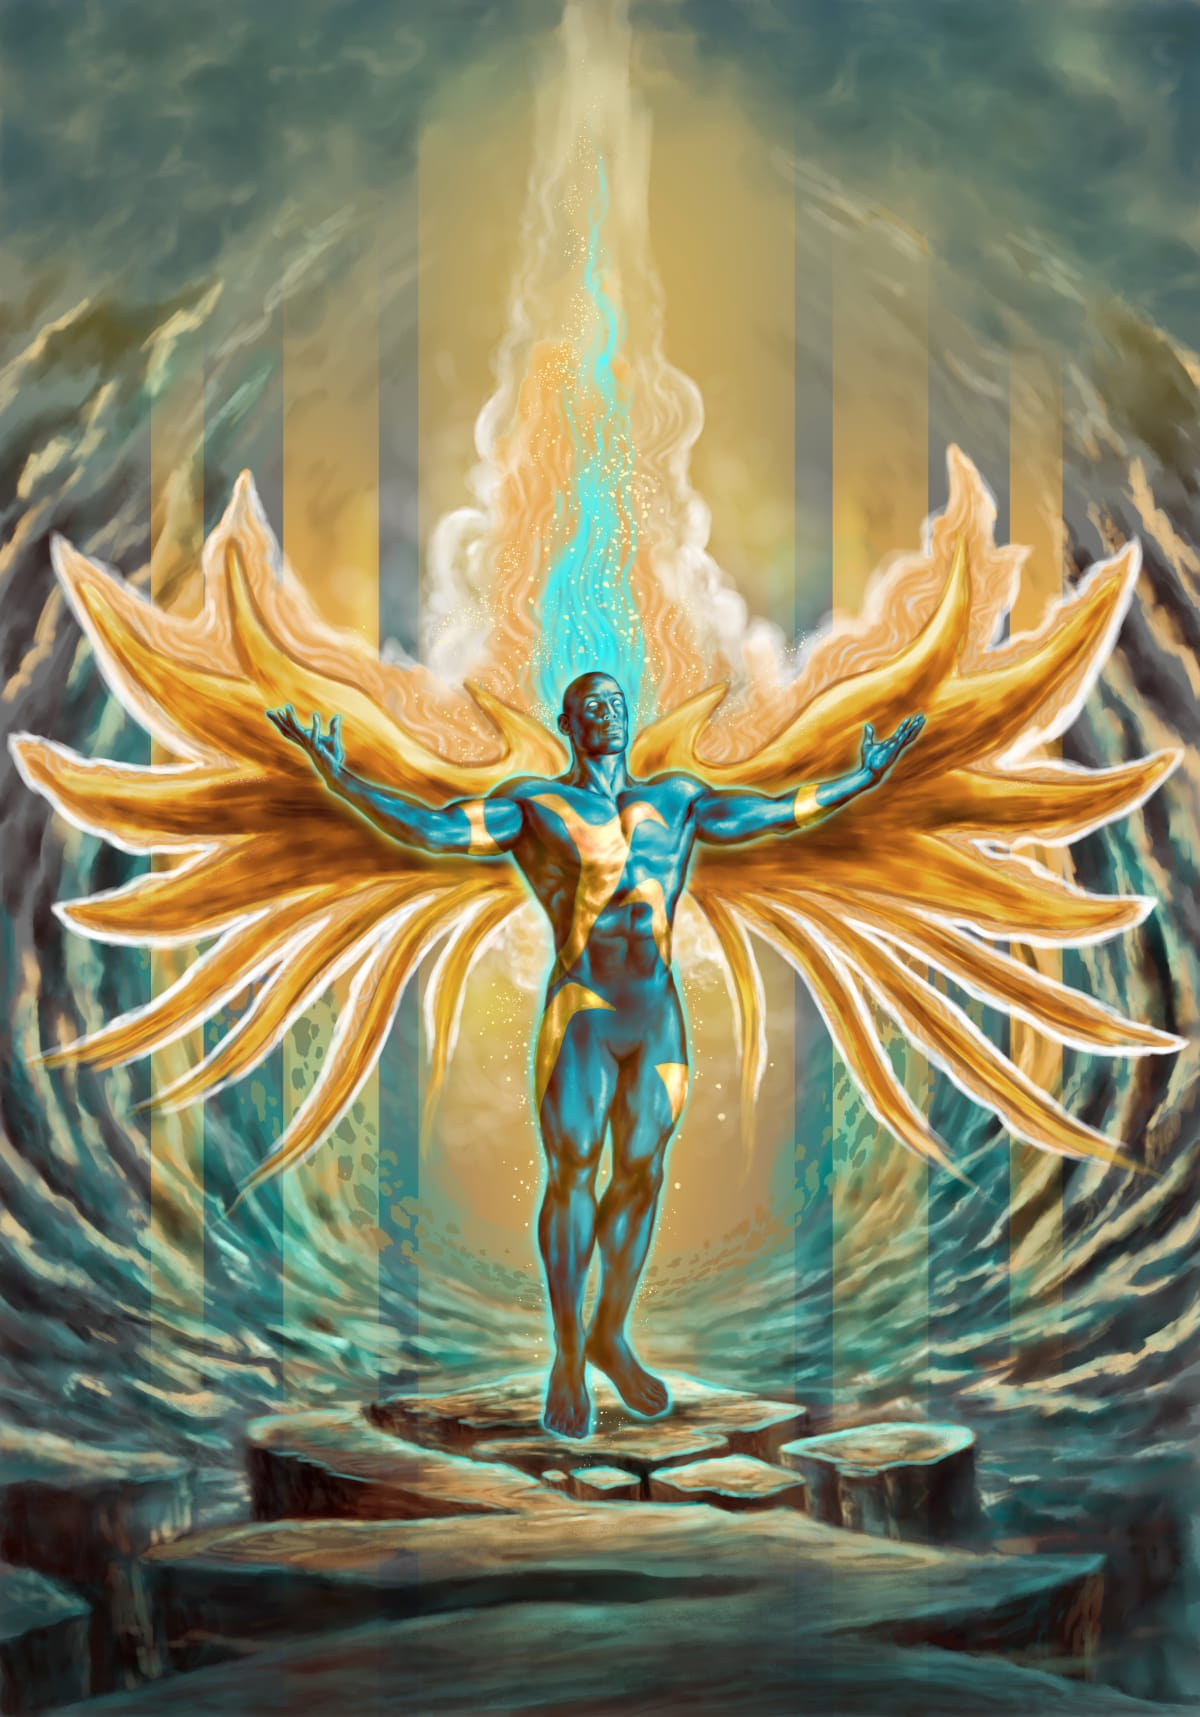 Om, Ethereal Power